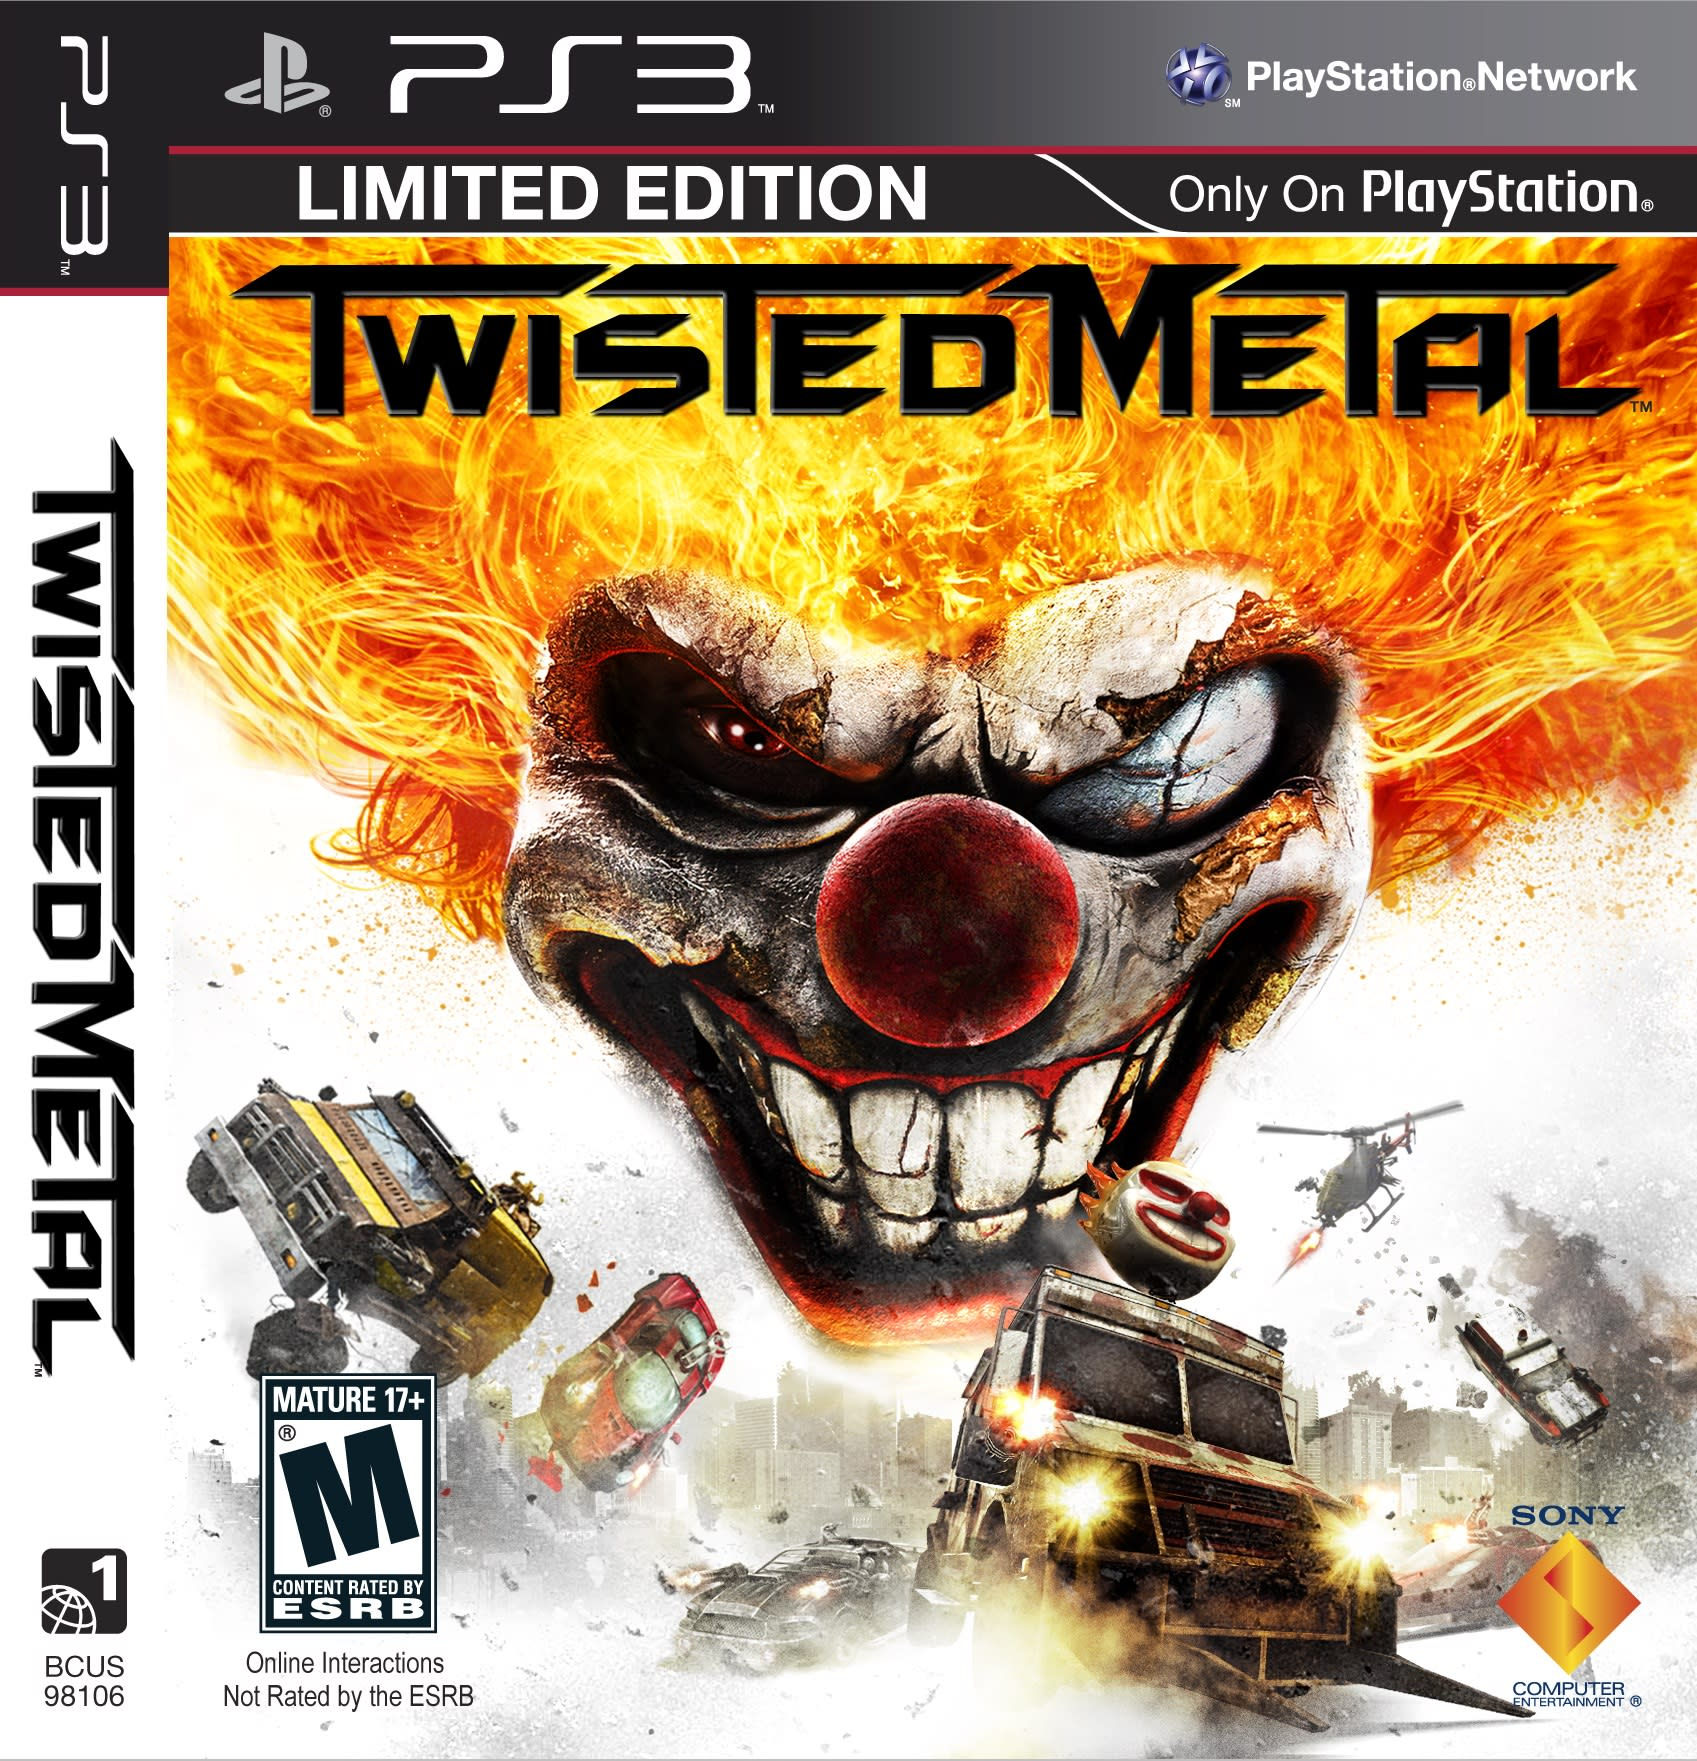 Twisted Metal' car game confirmed for TV show